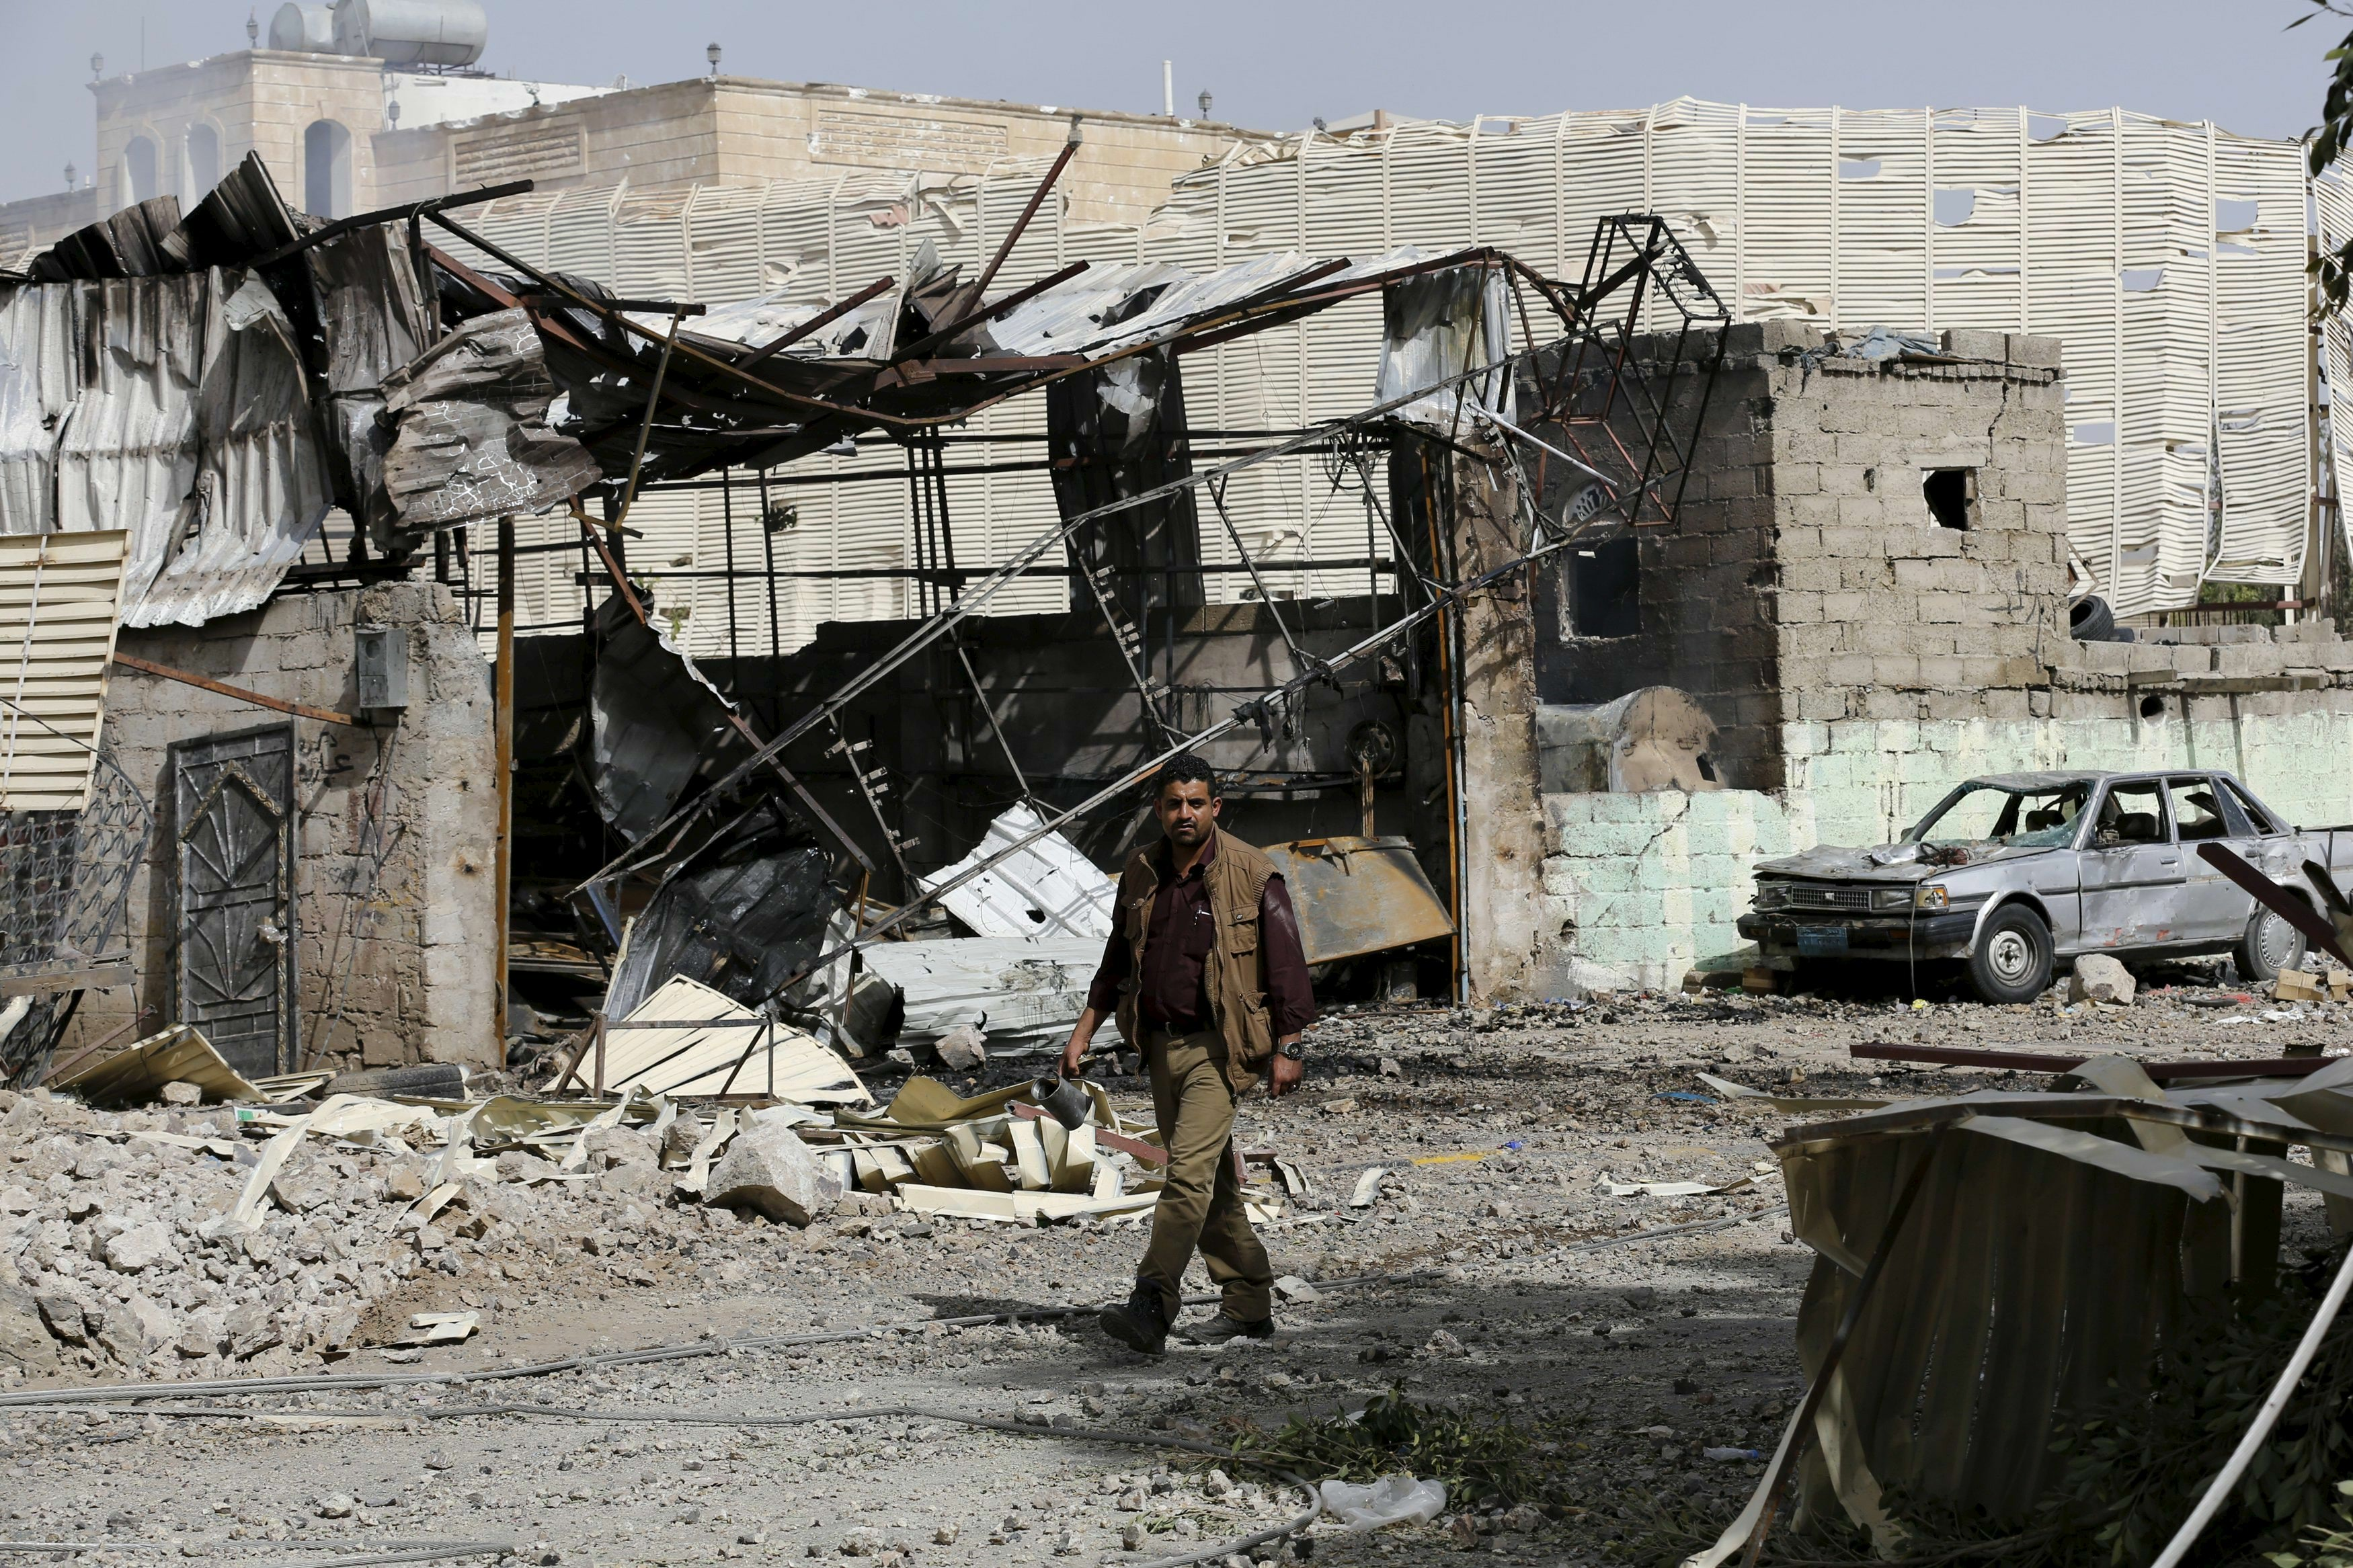 A man walks by a workshop damaged by an air strike on a nearby Scud missile base in Yemen's capital Sanaa